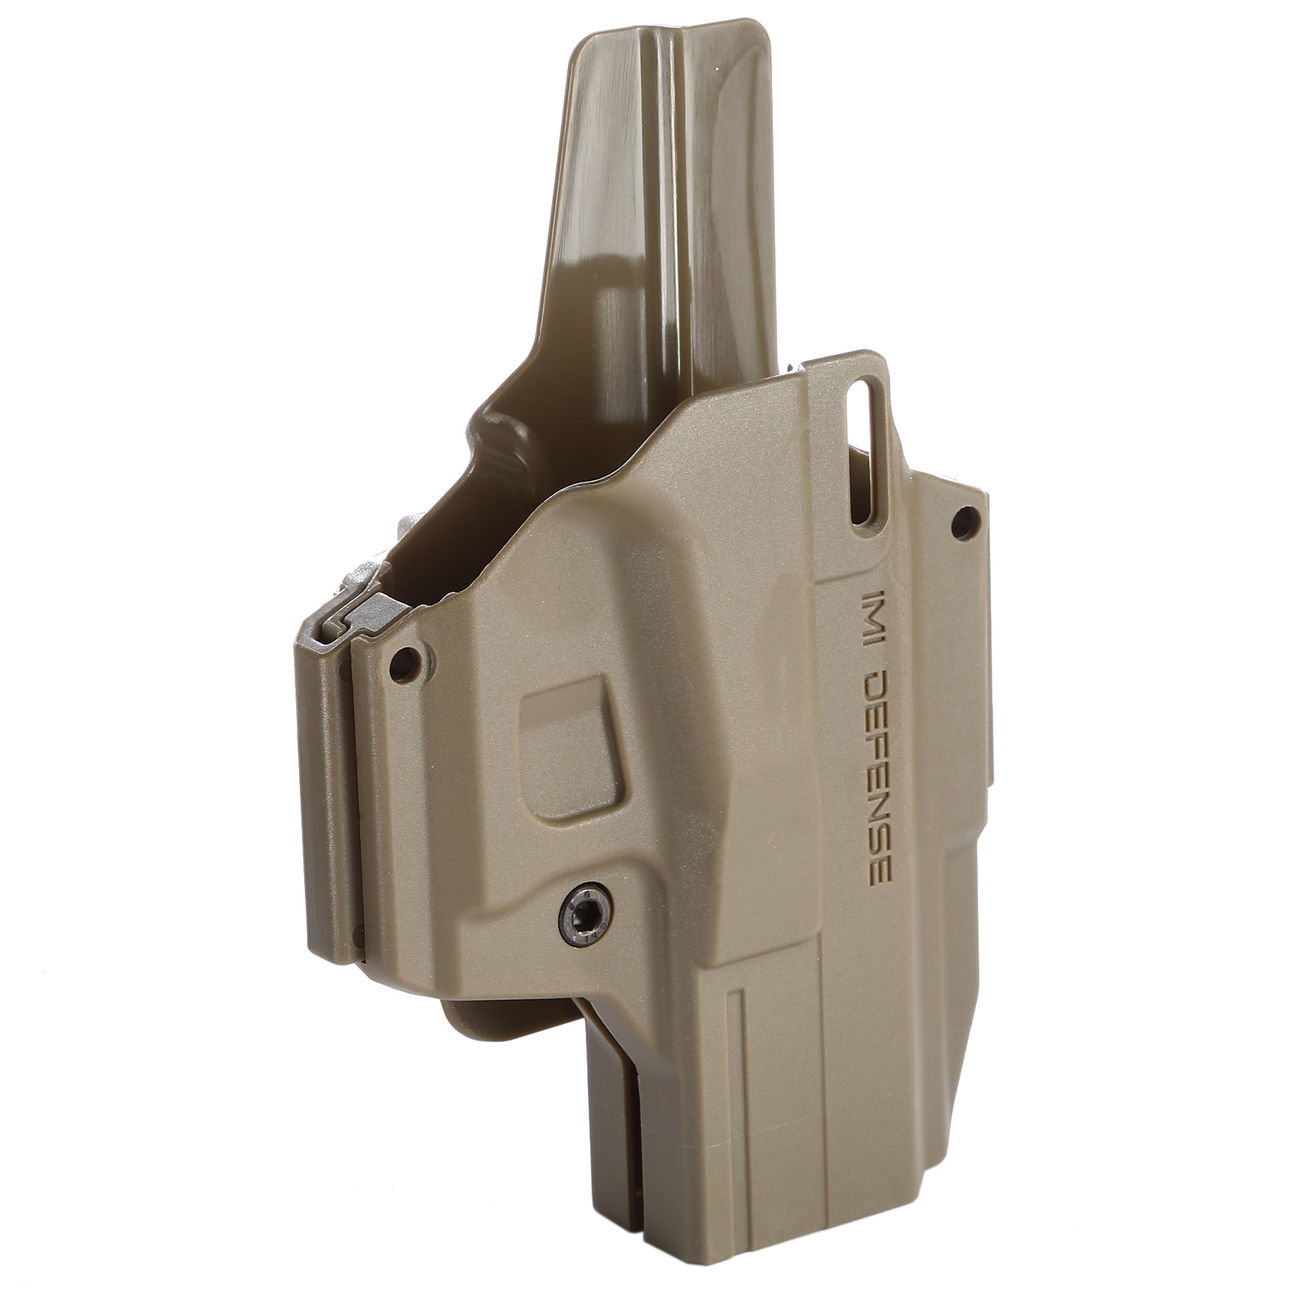 IMI Defense MORF X3 Polymer Holster IWB / OWB / Paddle für Glock 19 Rechts / Links Tan 0